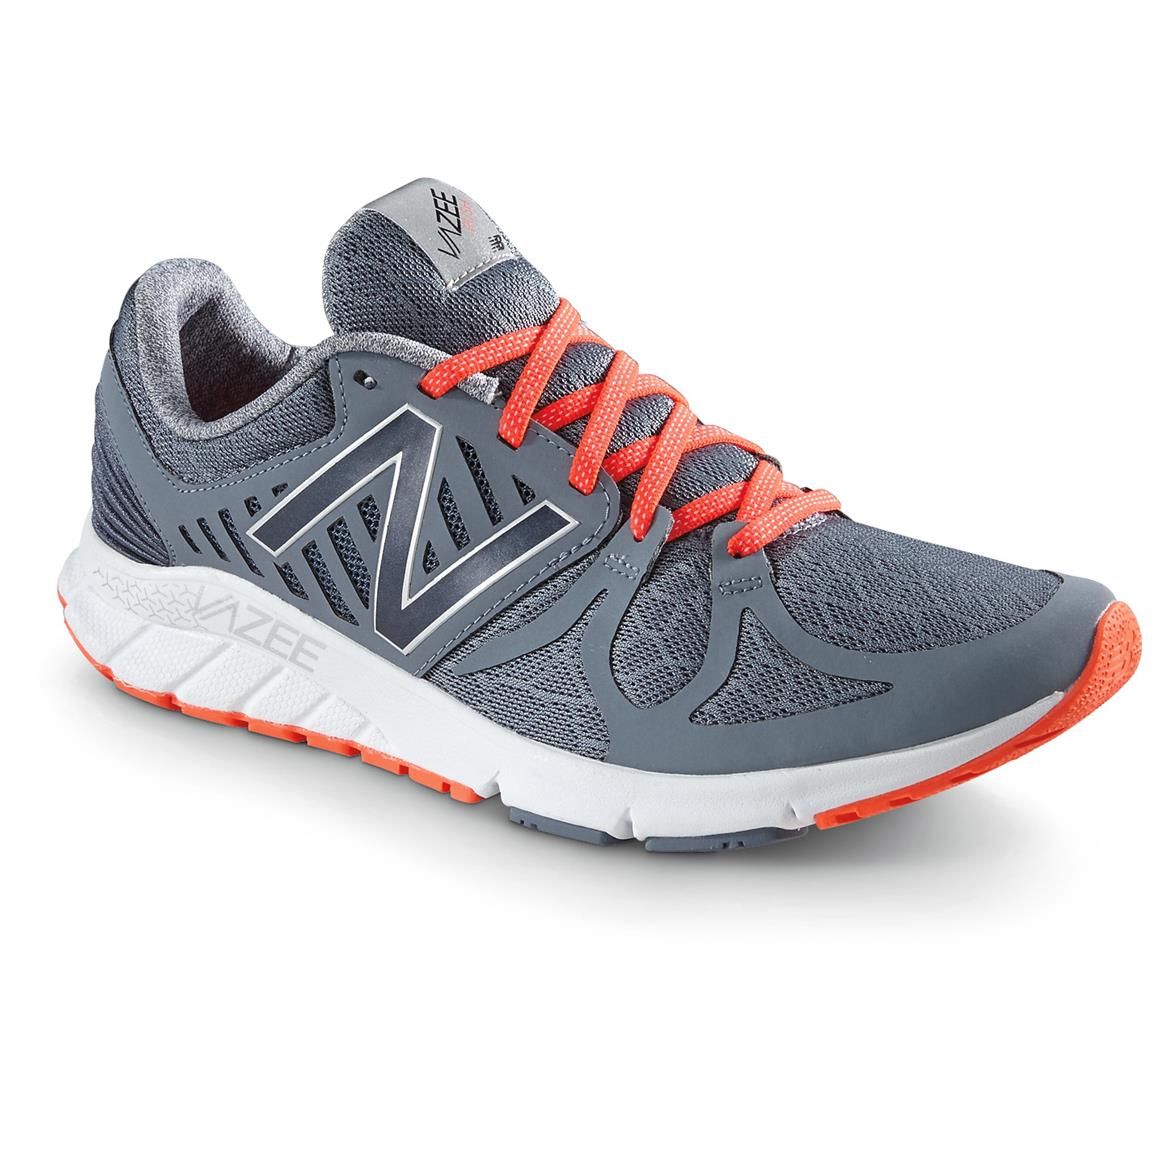 New Balance Men's Vazee Rush Running Shoes, Gray / Orange